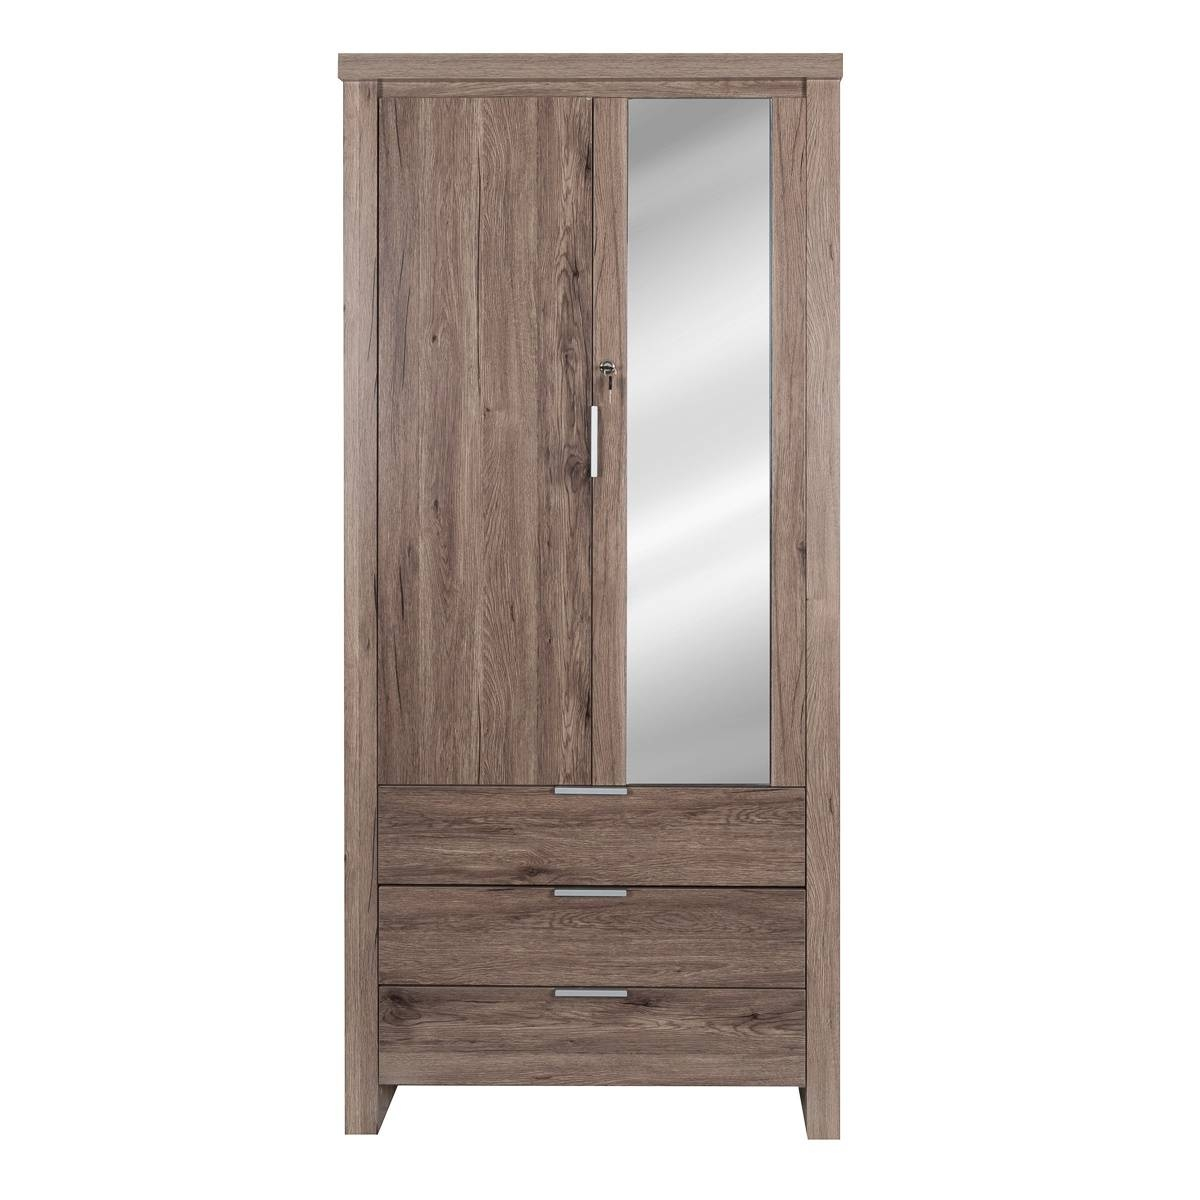 Safari 2 Door Wardrobe Mirror Oak | Wardrobes | Lifestyle Furniture inside Oak Mirrored Wardrobes (Image 10 of 15)